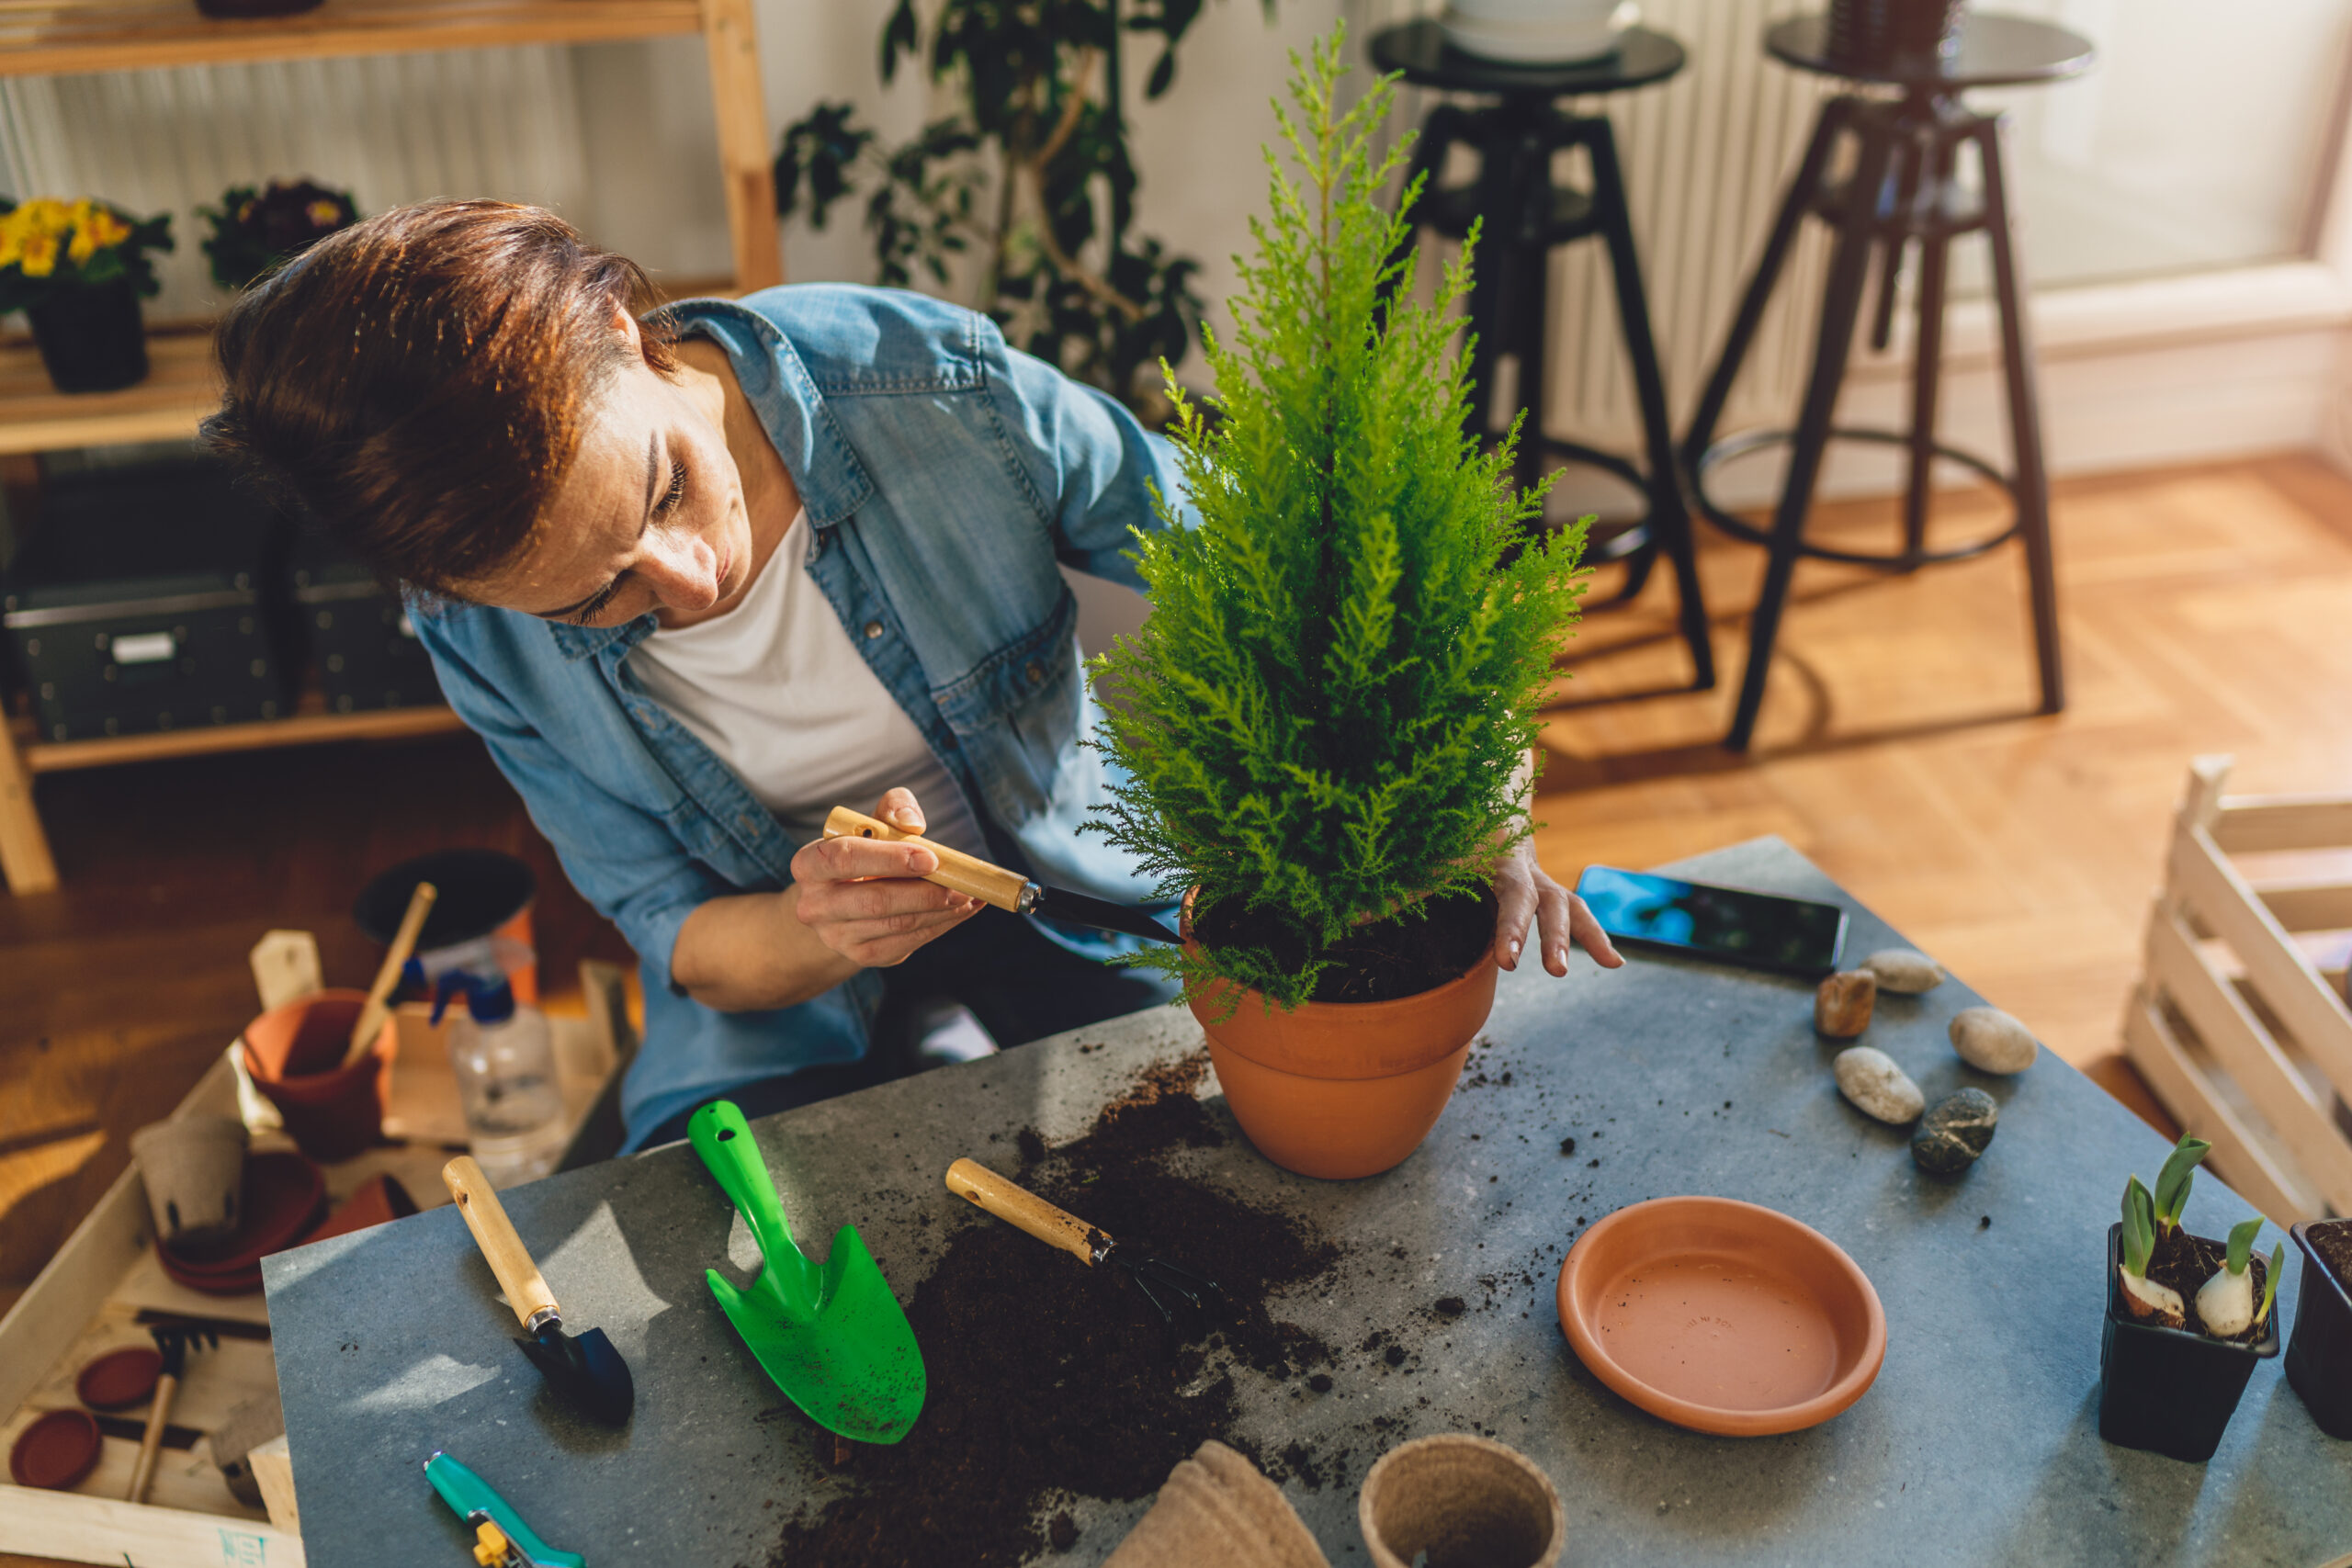 An individual is potting a tree indoors.